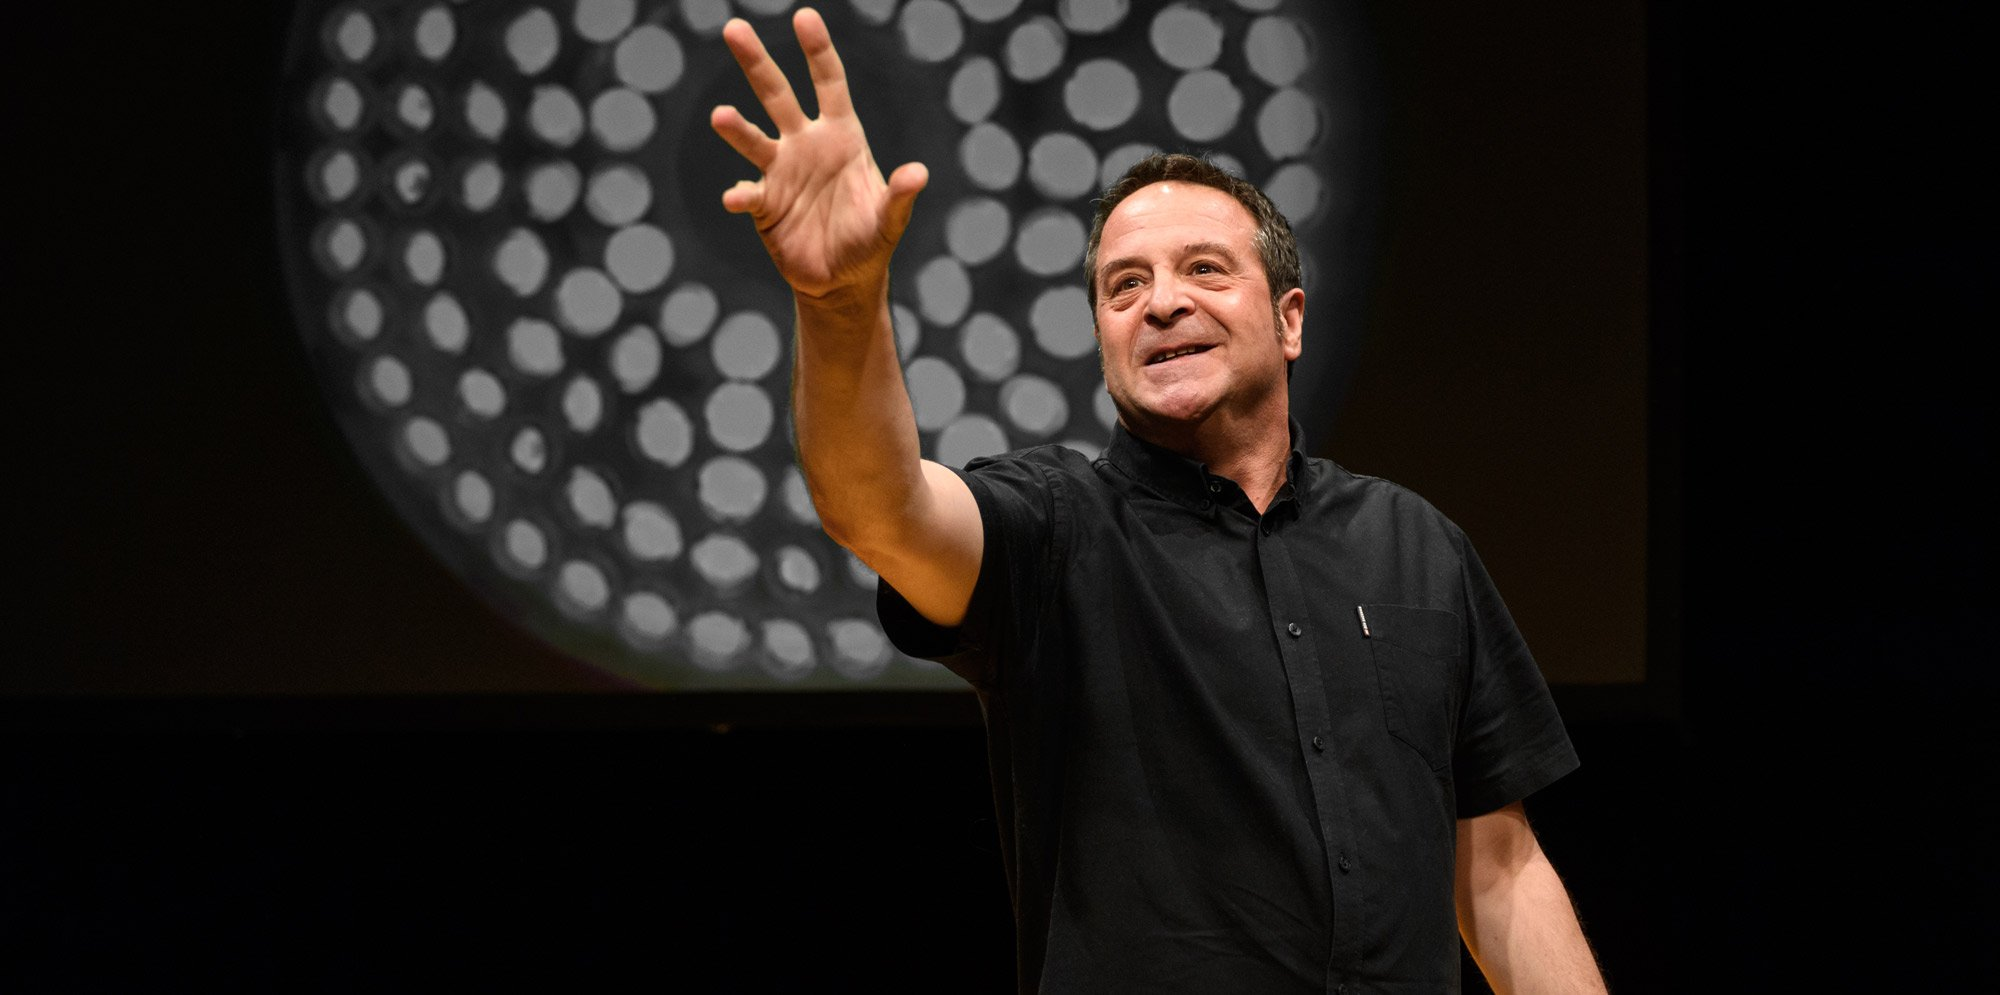 Mark Thomas on a stage, smiling and pointing with his right hand.